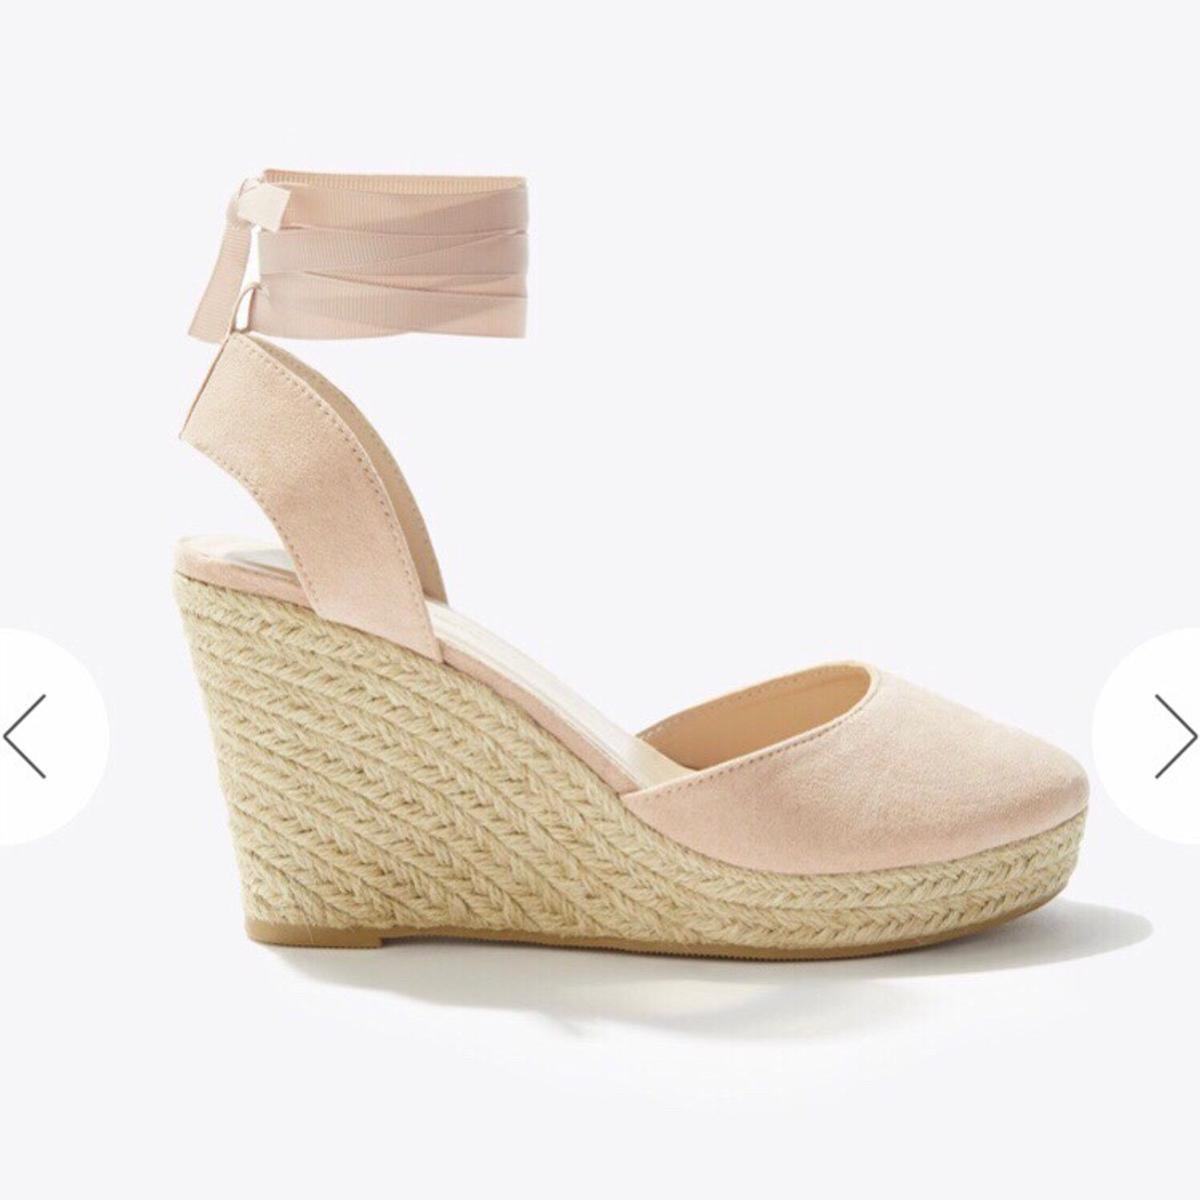 24668be3766 Miss Selfridge Pink Espadrille Wedge Shoes 6 in SW11 London for ...